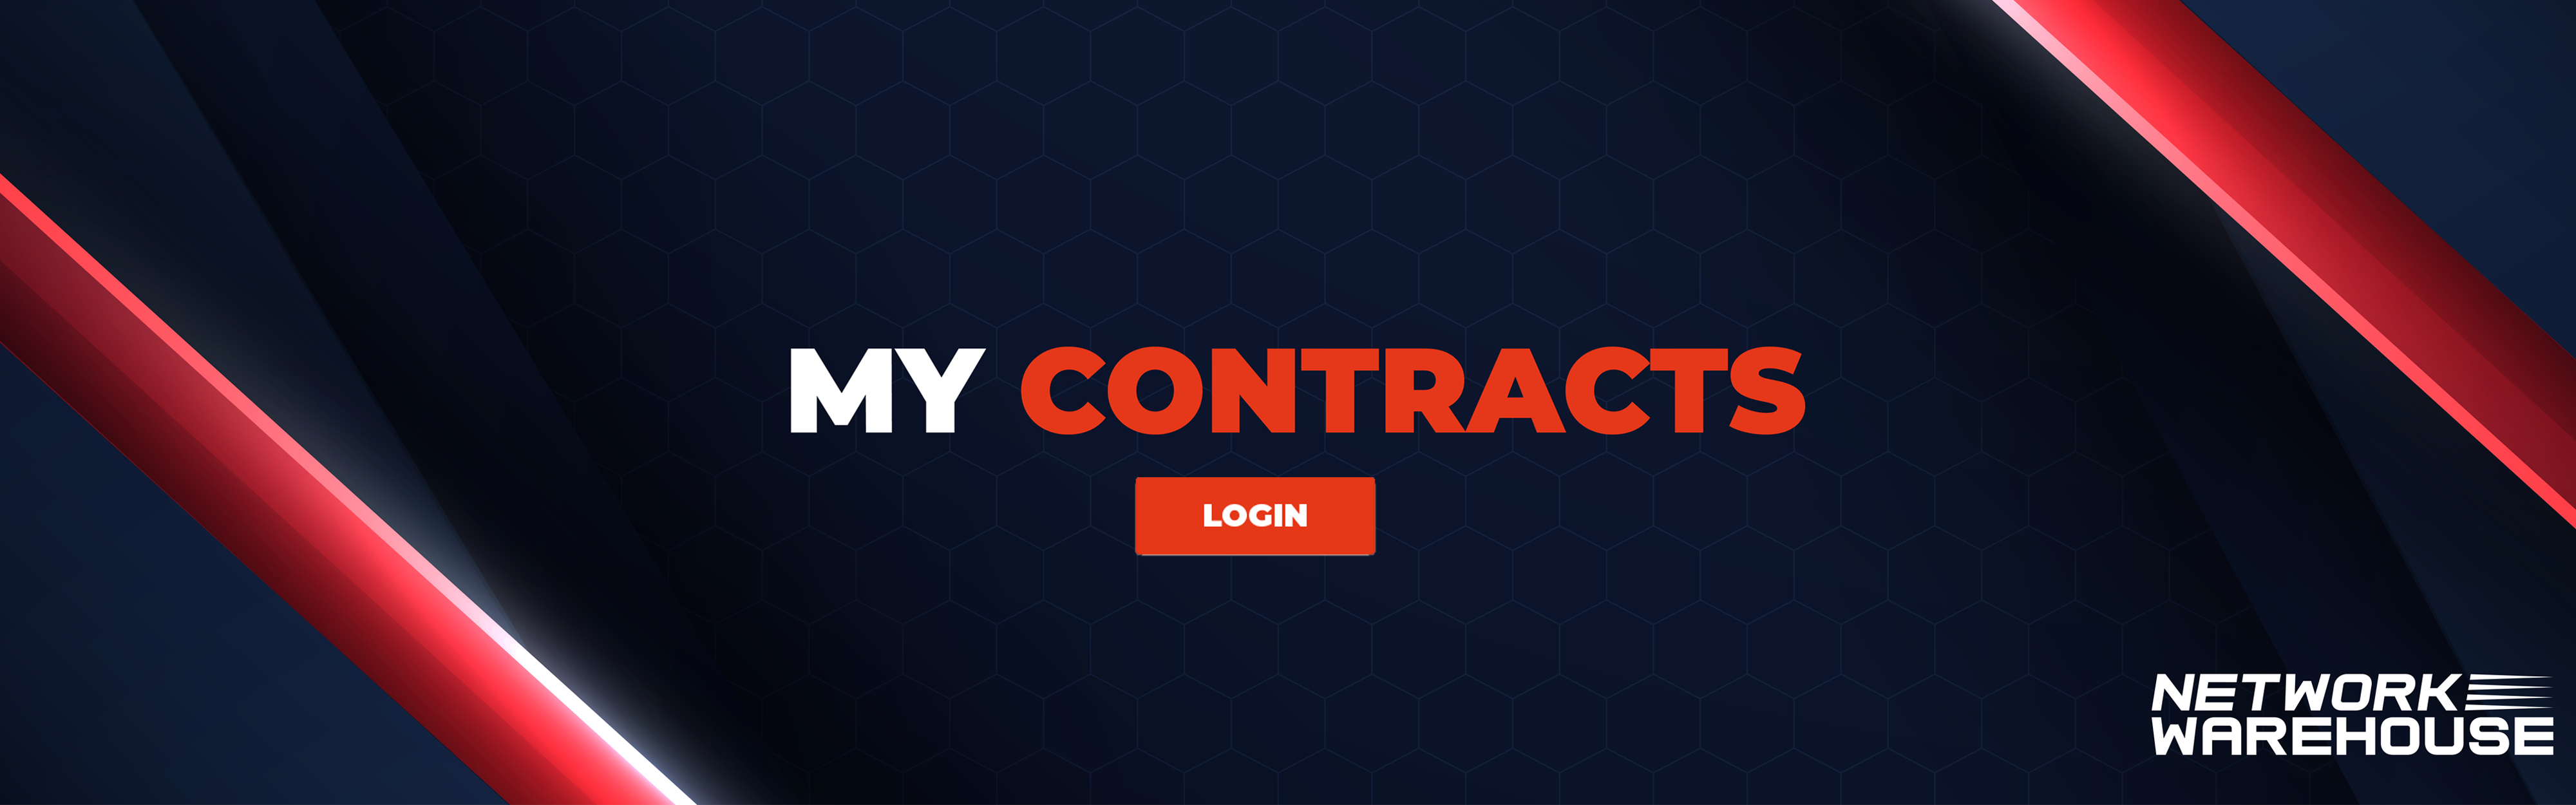 My Contracts Login